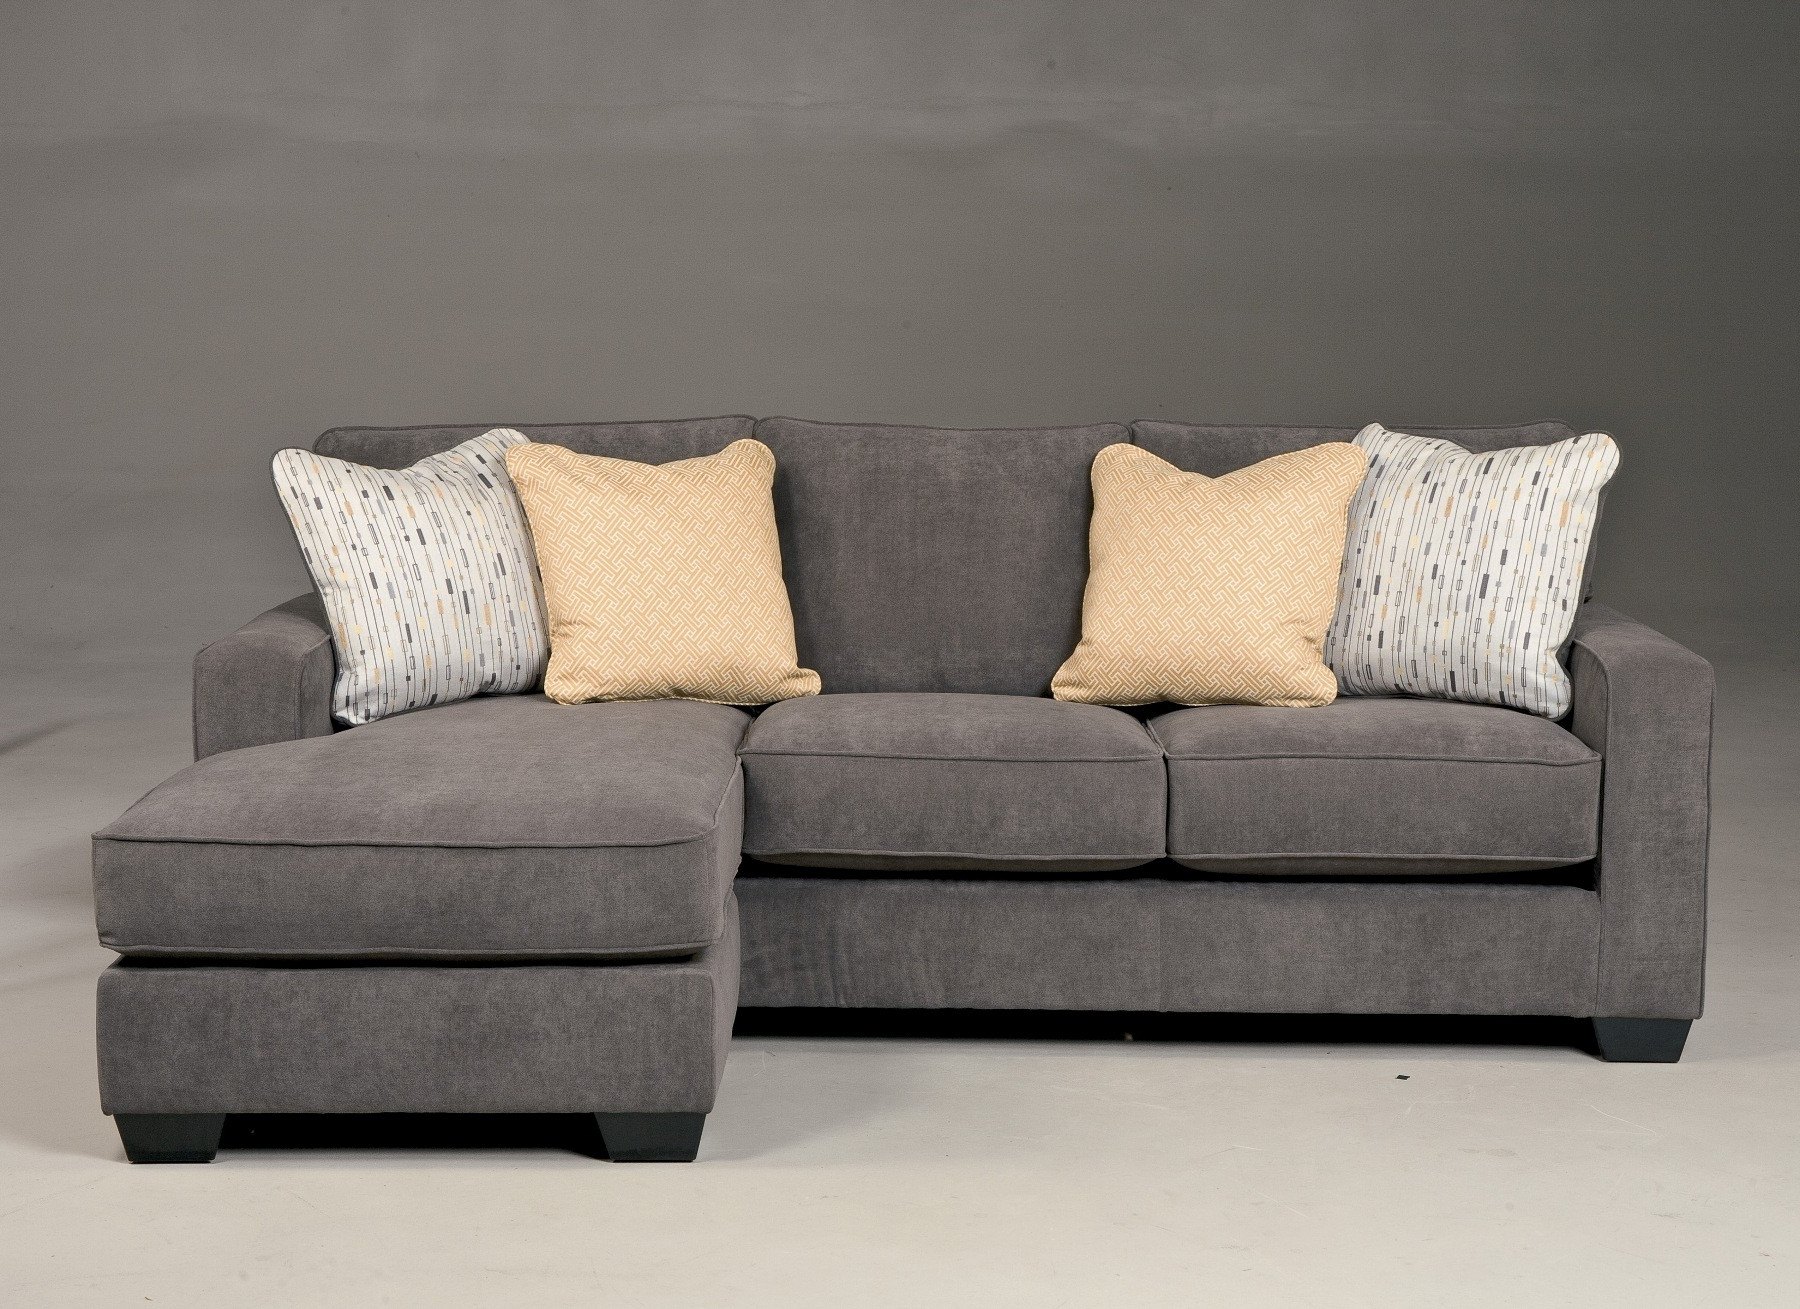 Popular $719 – Ashley – Hodan Marble Sofa With Chaise Good Fabric Good Within Cheap Chaise Sofas (View 7 of 15)